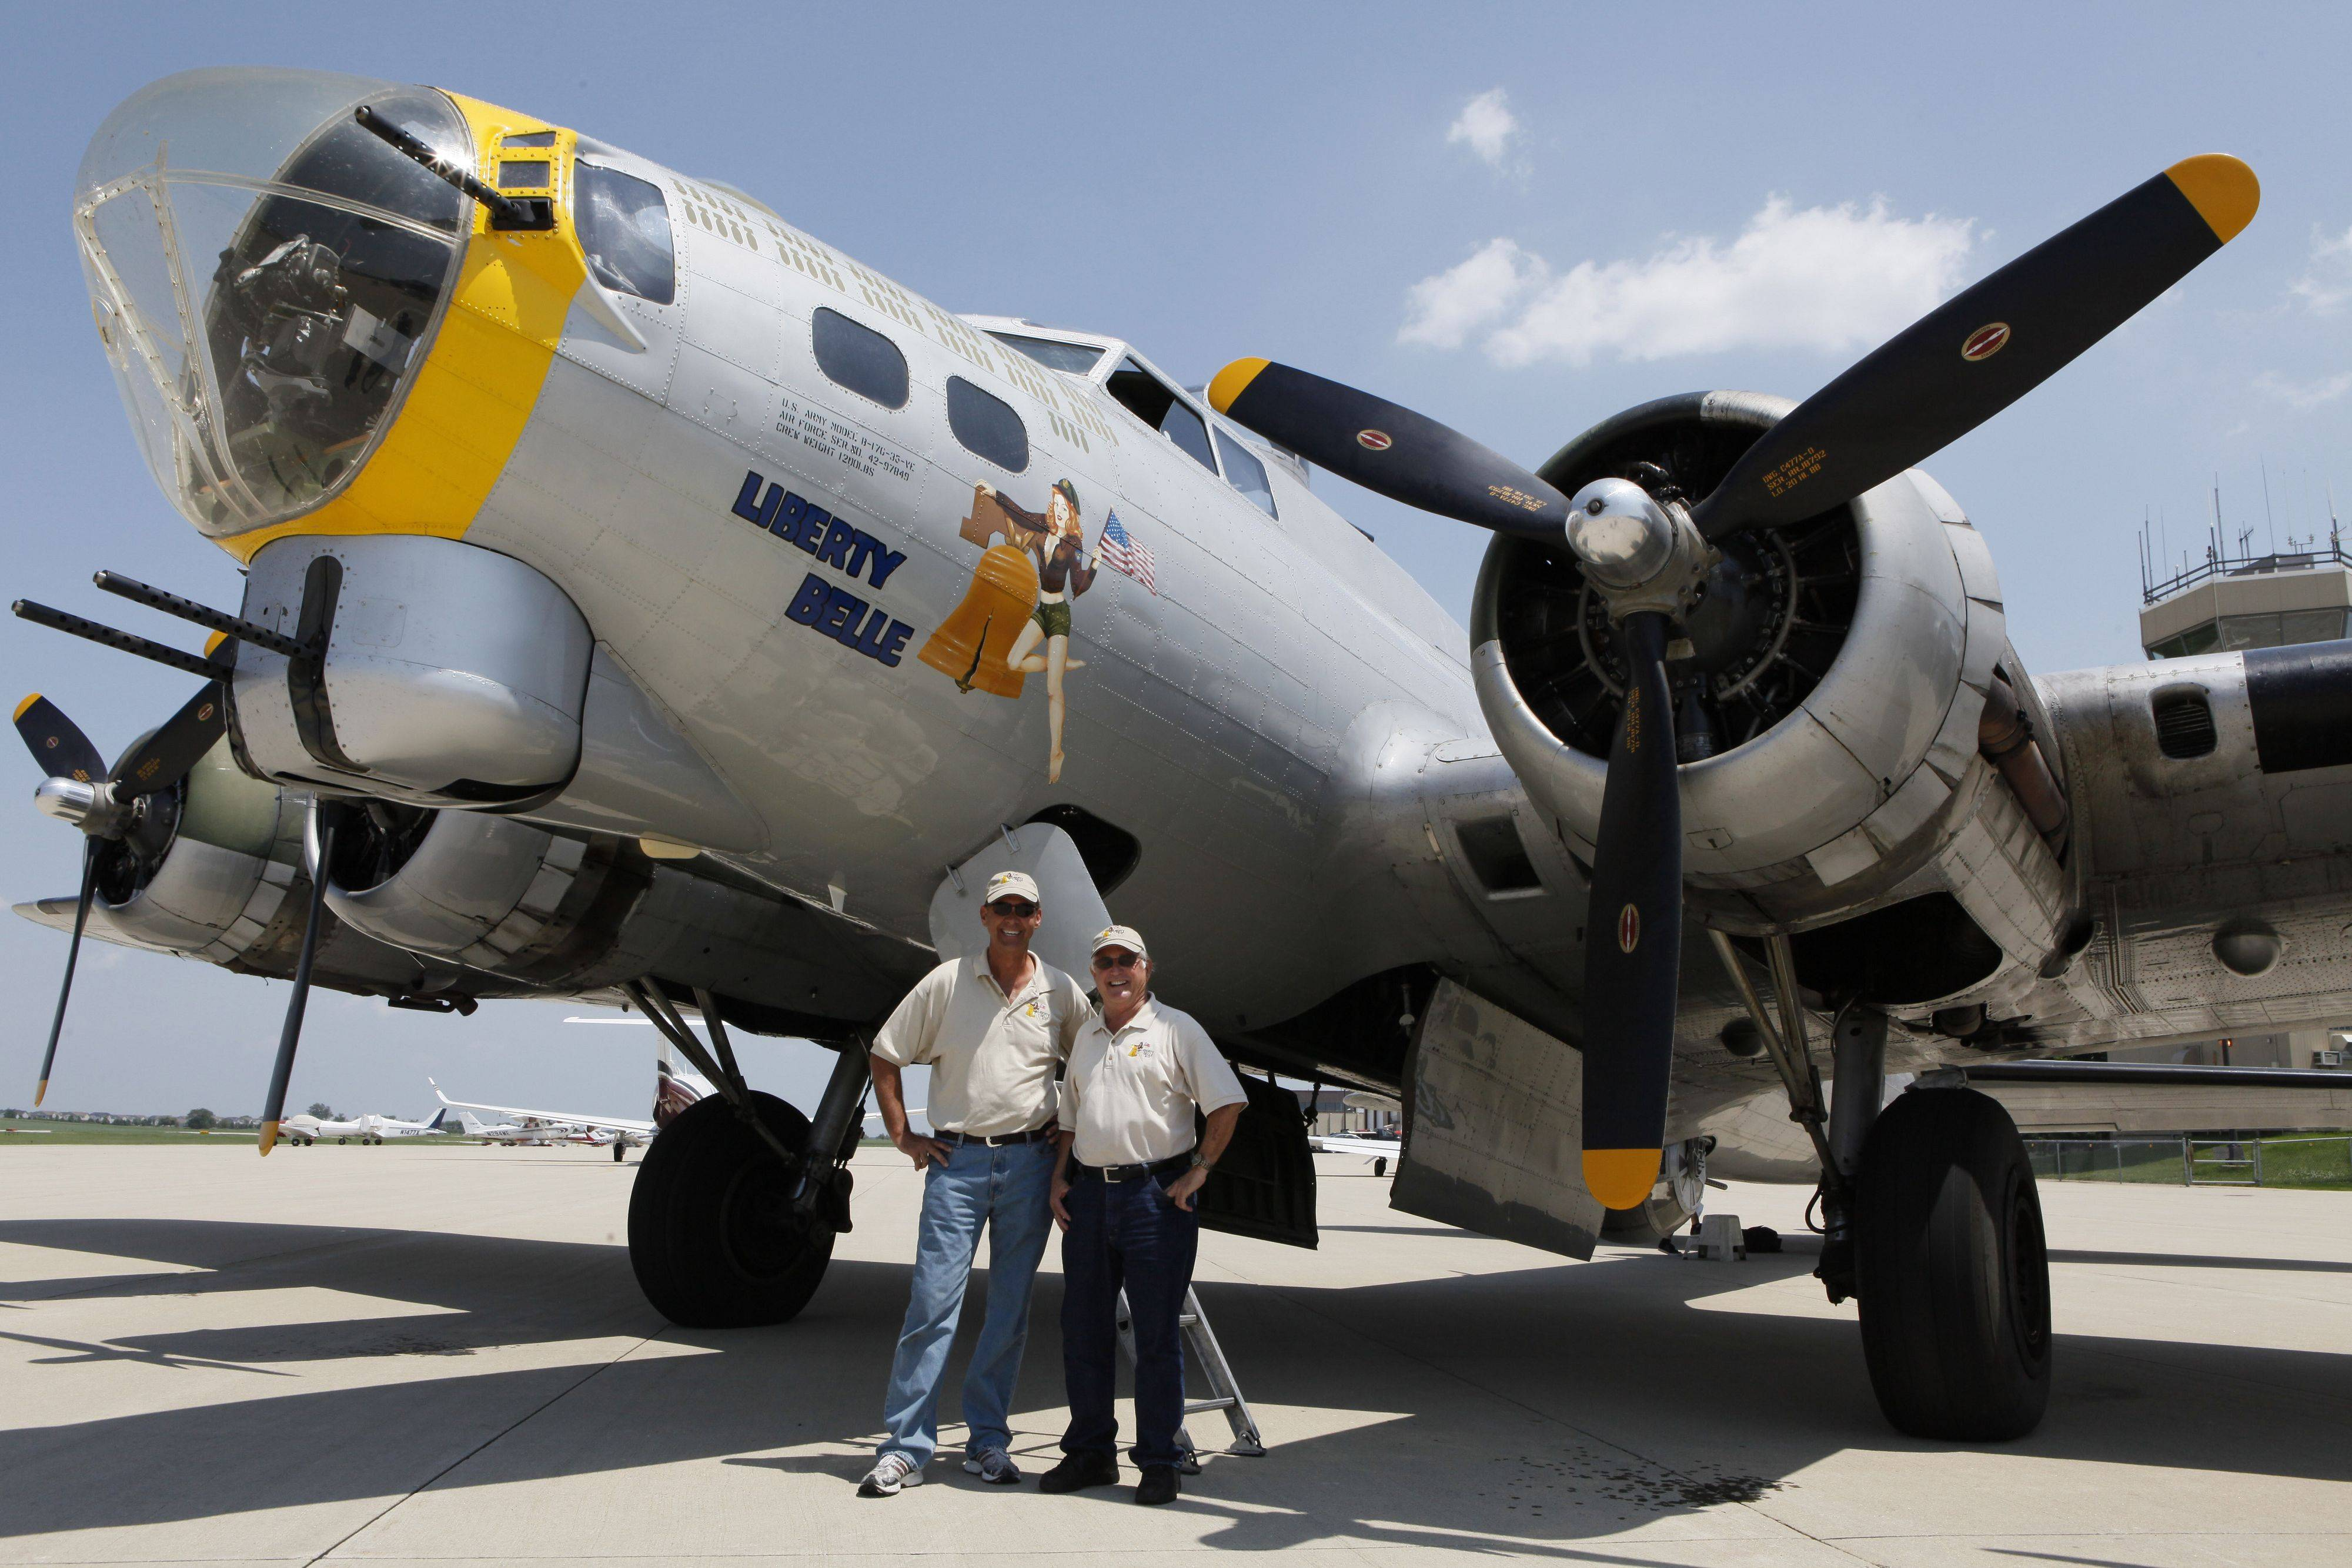 Pilot Mike Walton and co-pilot Dave Lyon stand next to their B-17 Flying Fortress bomber that they flew into Aurora Municipal Airport in Sugar Grove last week. The bomber is part of the Liberty Foundation.